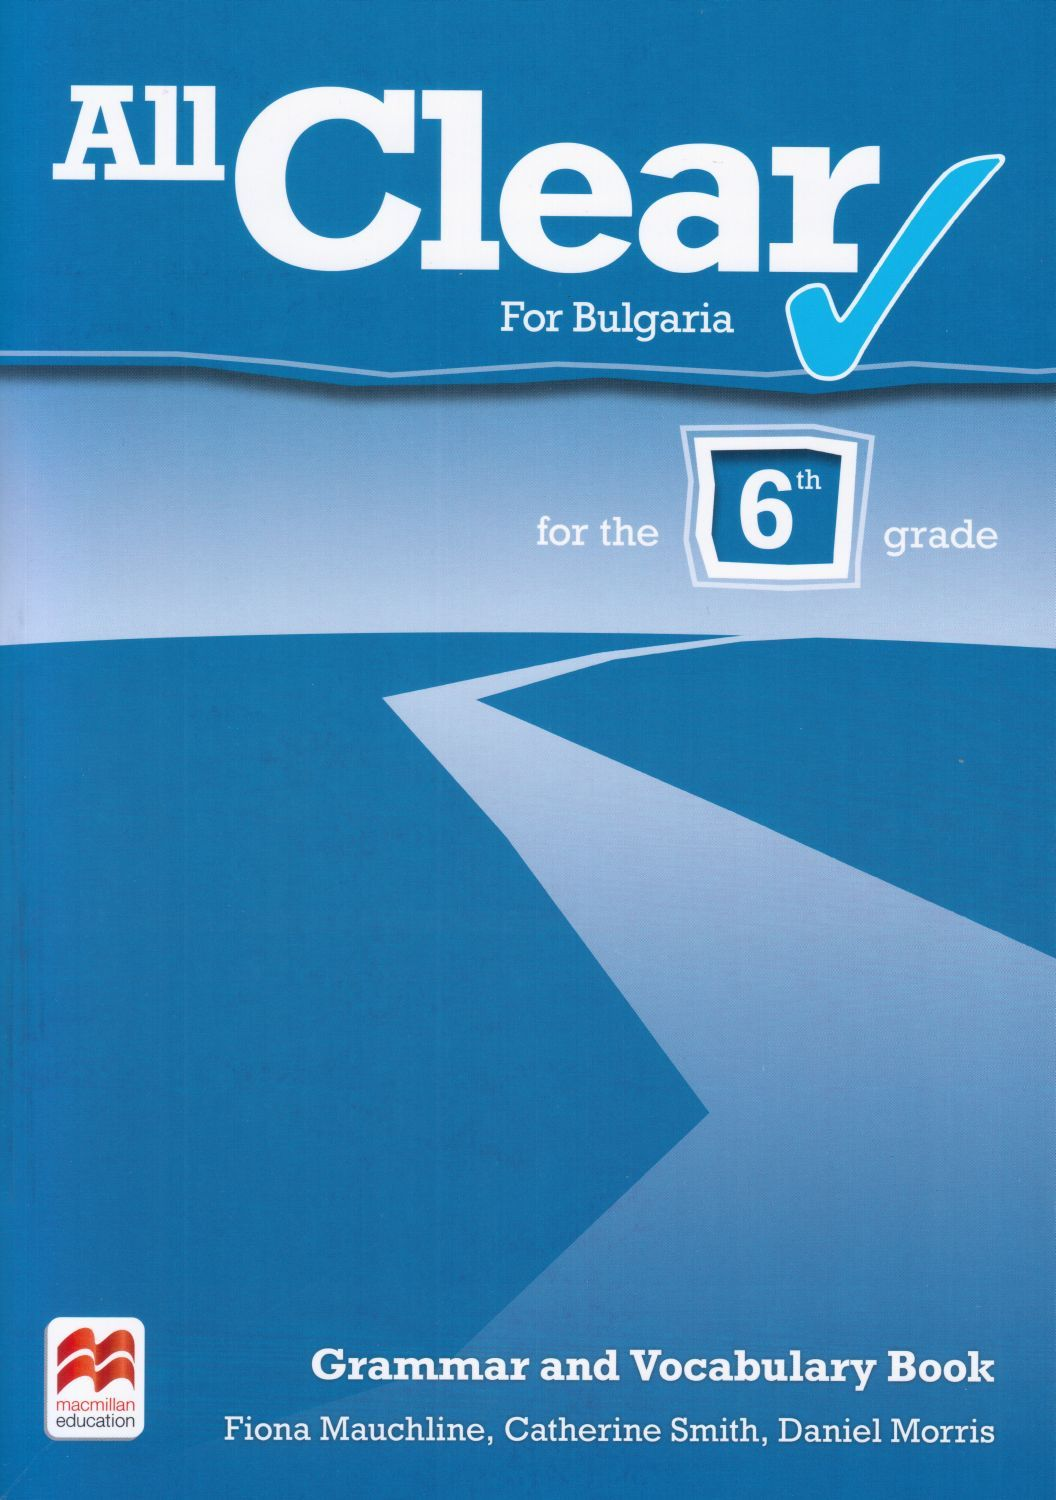 All Clear for Bulgaria for the 6-th grade: Grammar and Vocabulary Book / Английски език за 6. клас (Граматика и лексика) - 1